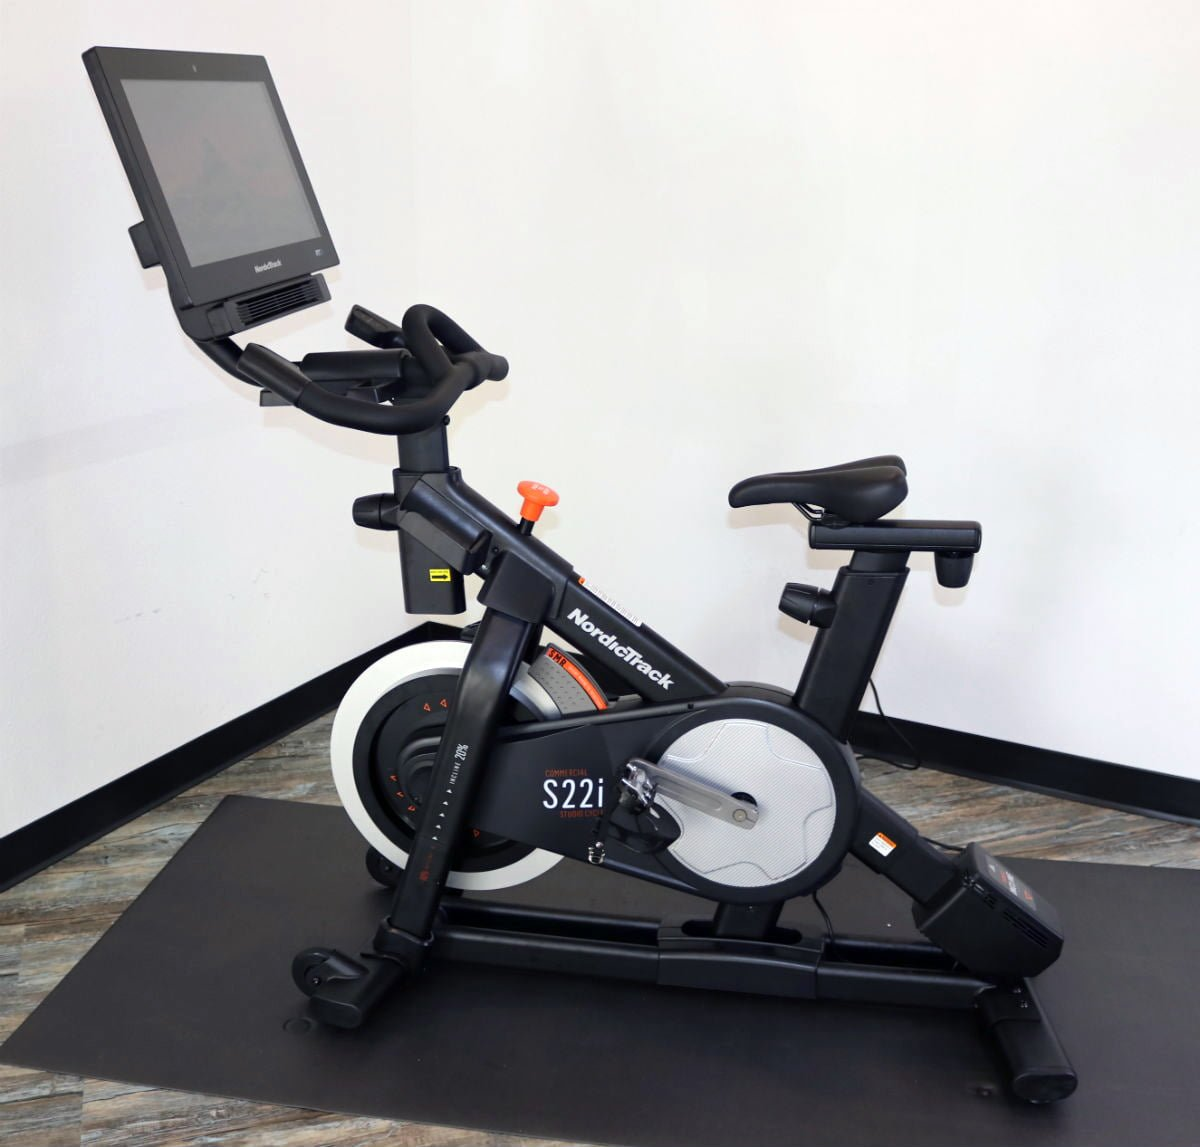 Nordictrack S22i Live Classes | Exercise Bike Reviews 101